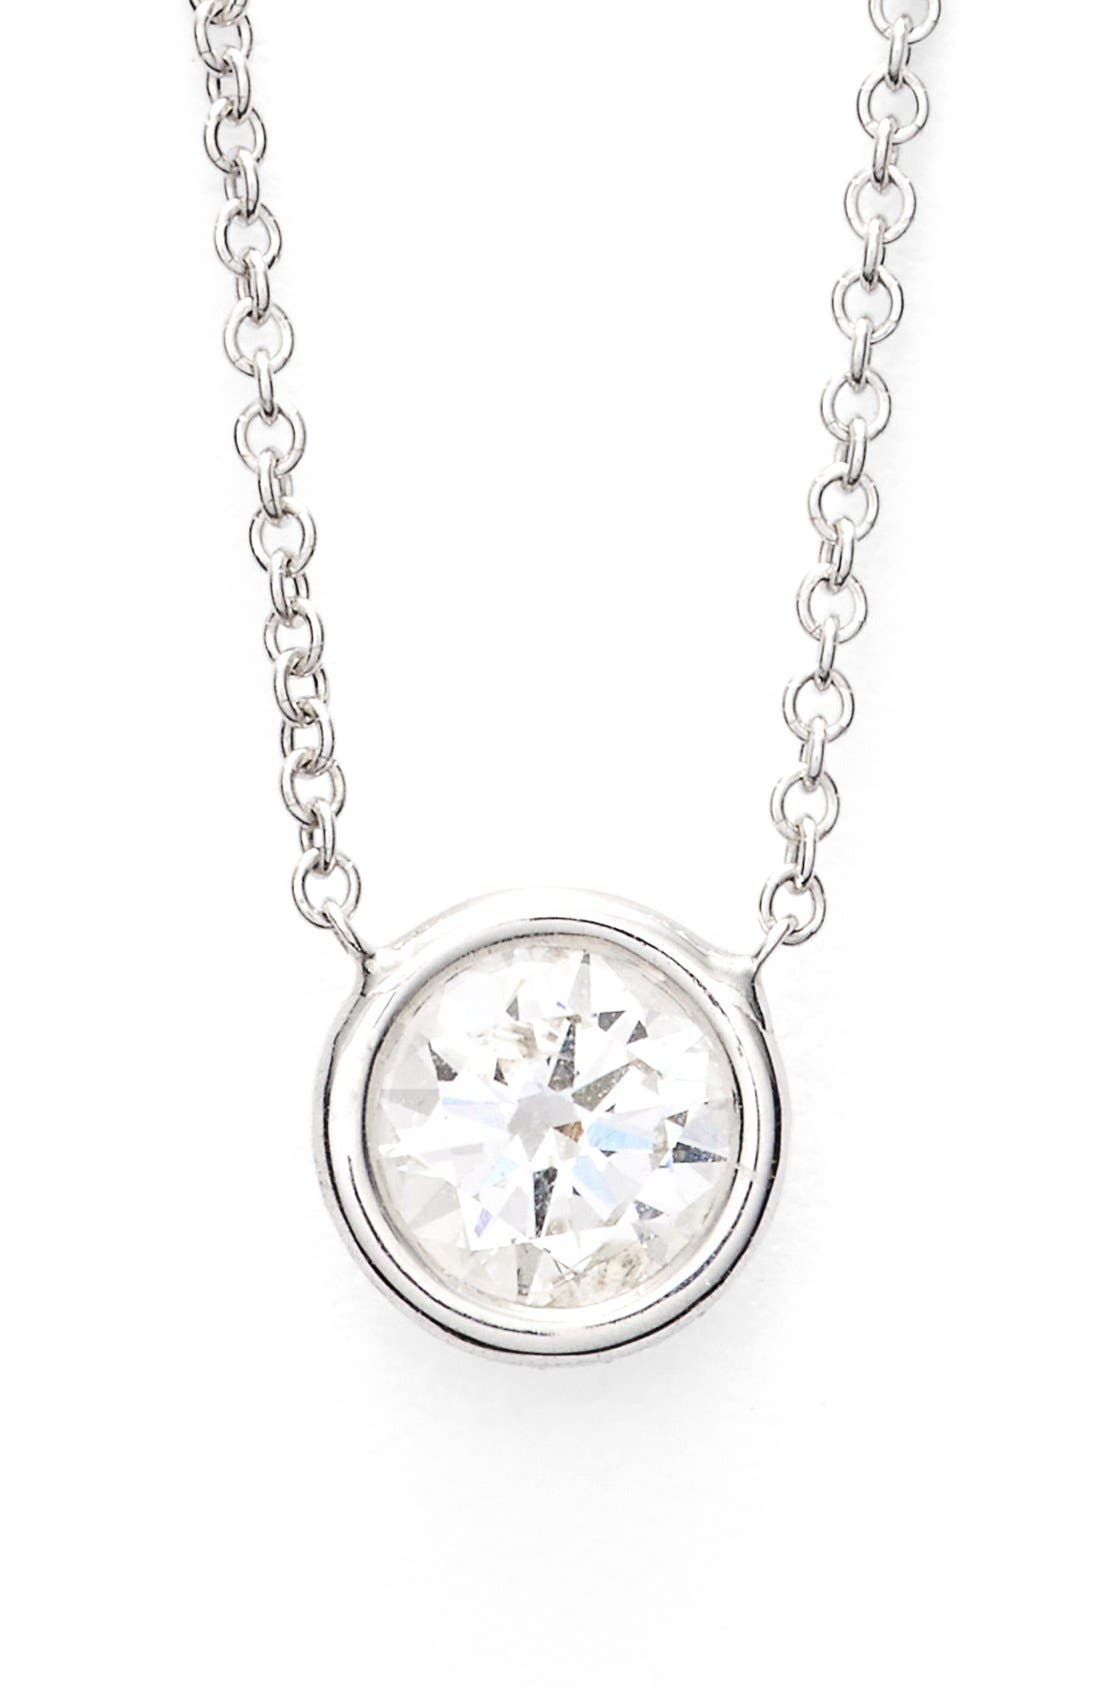 Main Image - Bony Levy Large Diamond Solitaire Pendant Necklace (Limited Edition) (Nordstrom Exclusive)